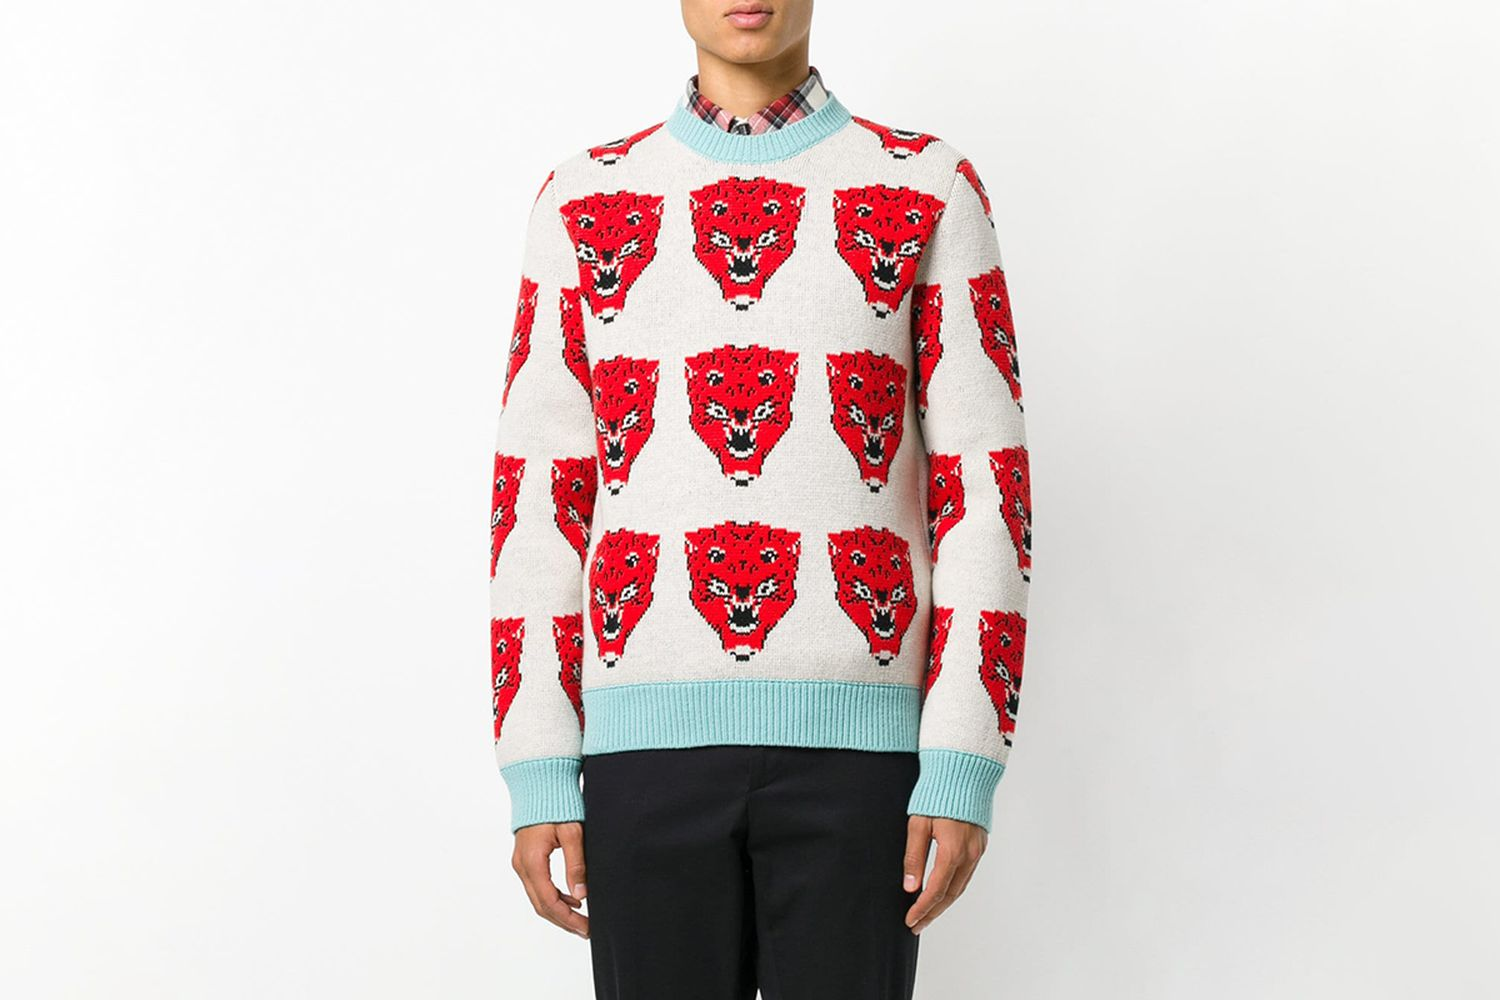 Tiger Jacquard Knitted Sweater